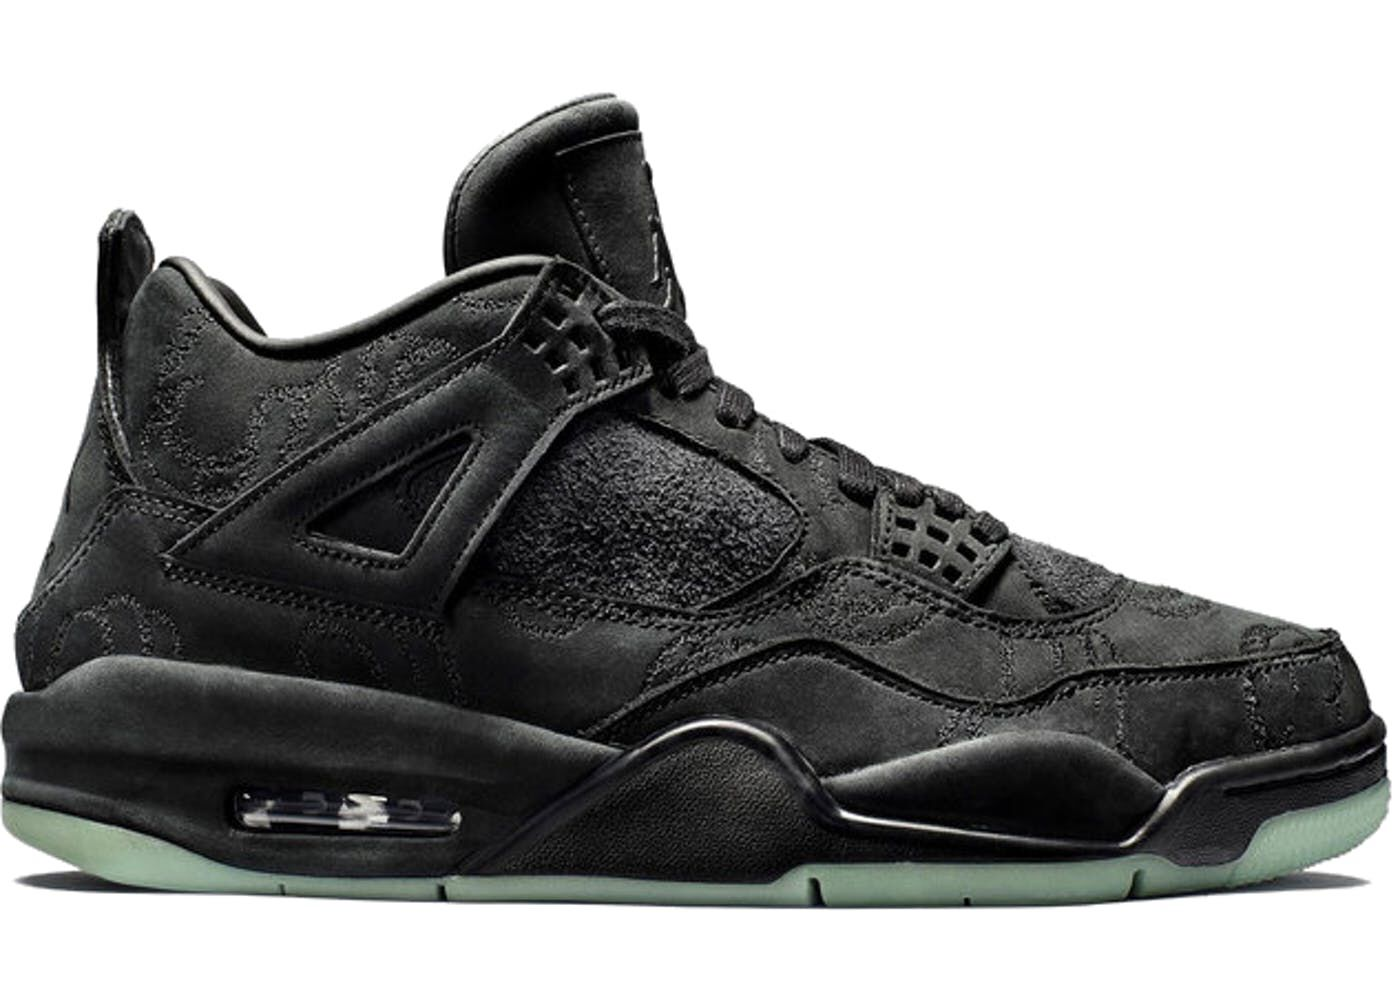 31ac50bd Check out the Jordan 4 Retro Kaws Black available on StockX | Shoes ...